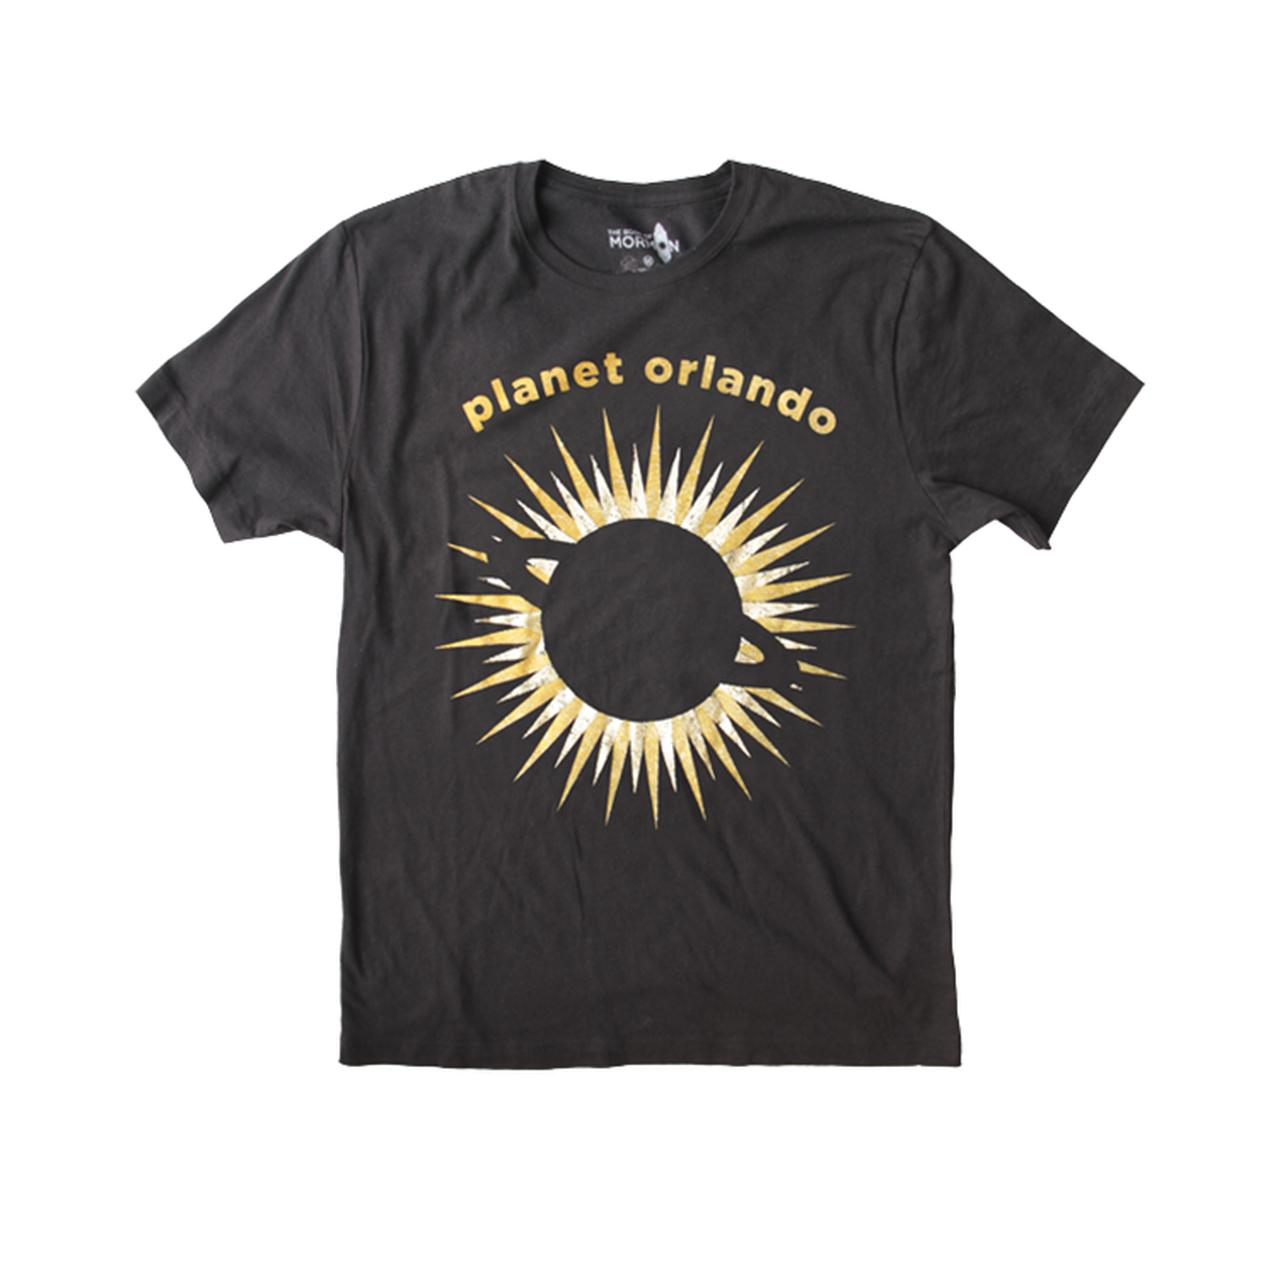 book of mormon planet orlando tee